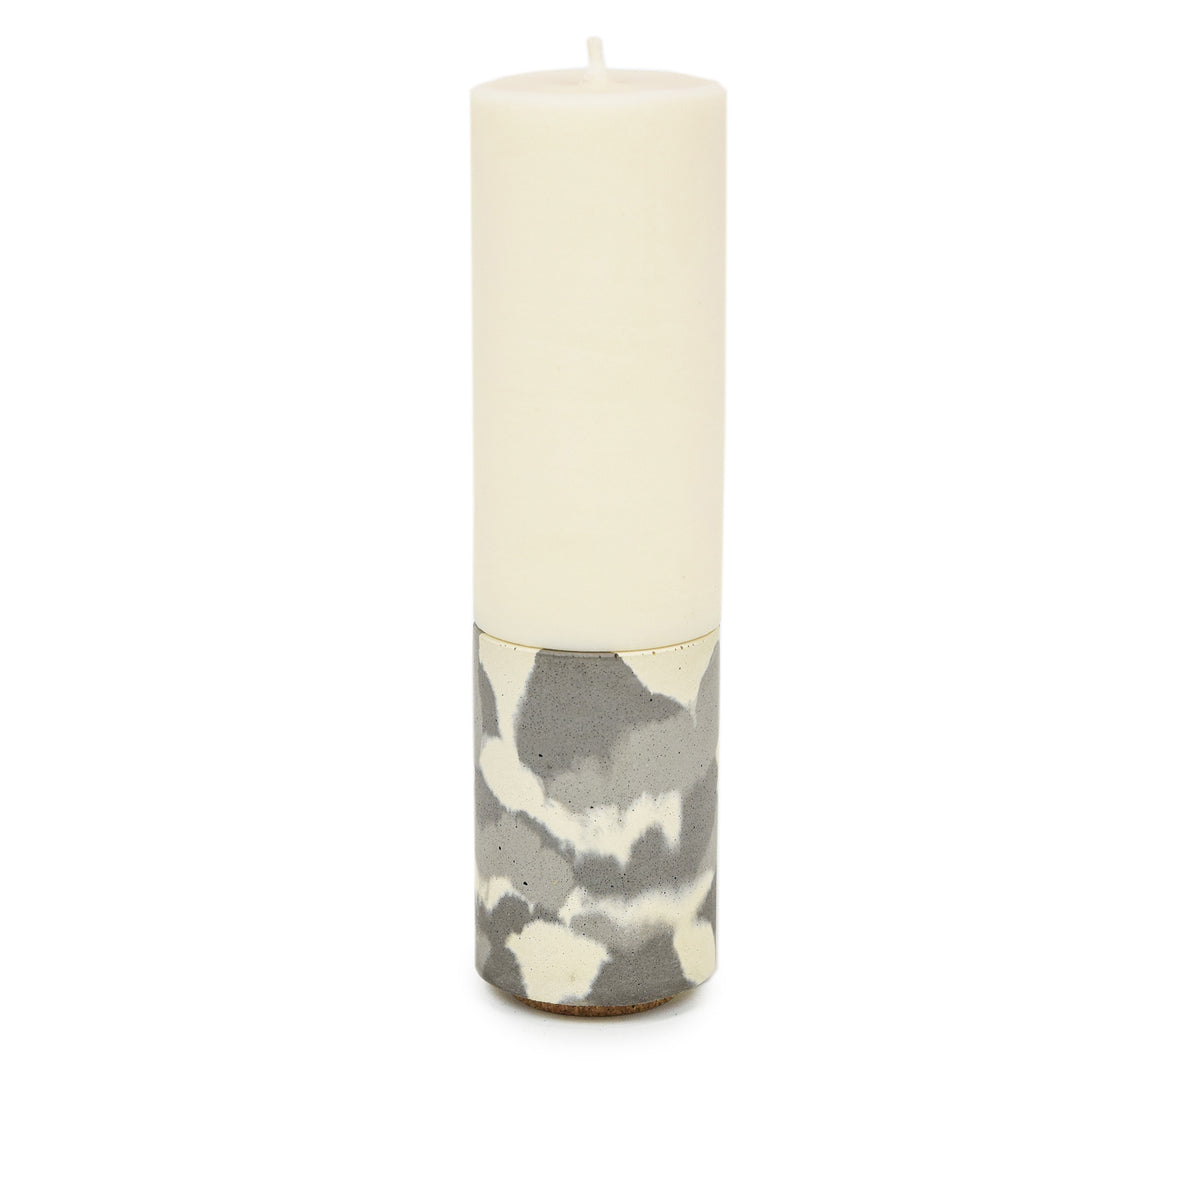 Concrete & Wax Tobacco And Oak Candle And Snow Camo Concrete Holder Slim CANDLE